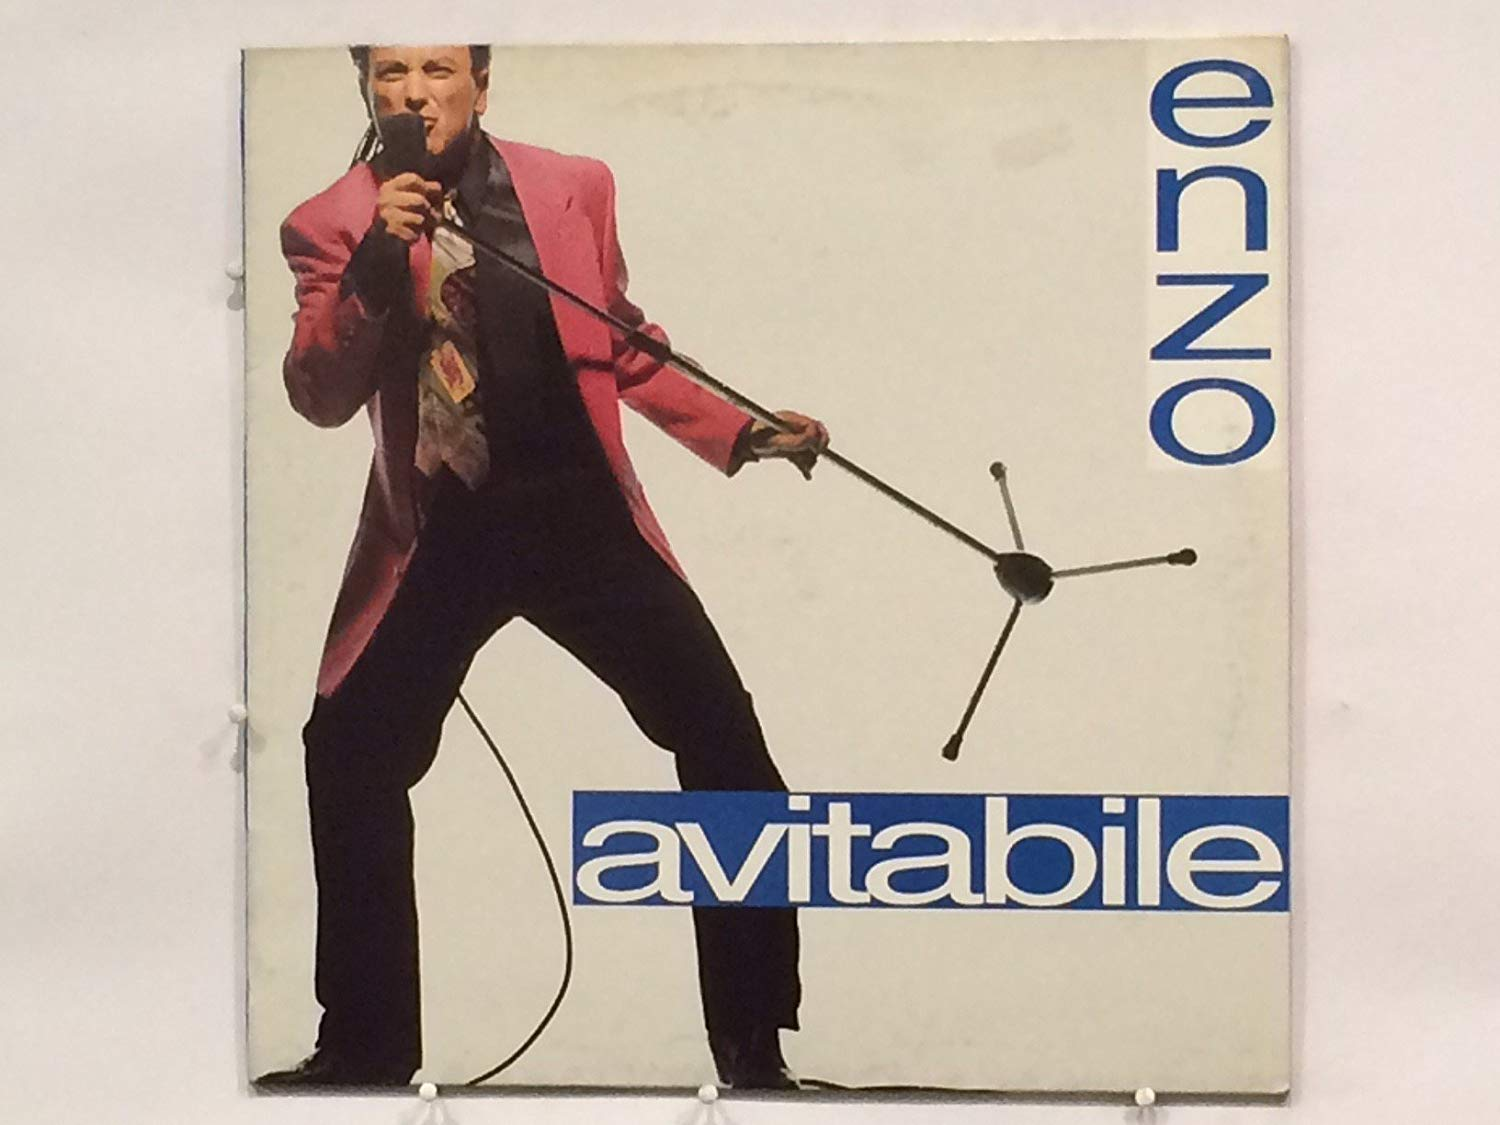 ENZO AVITABILE (LP)